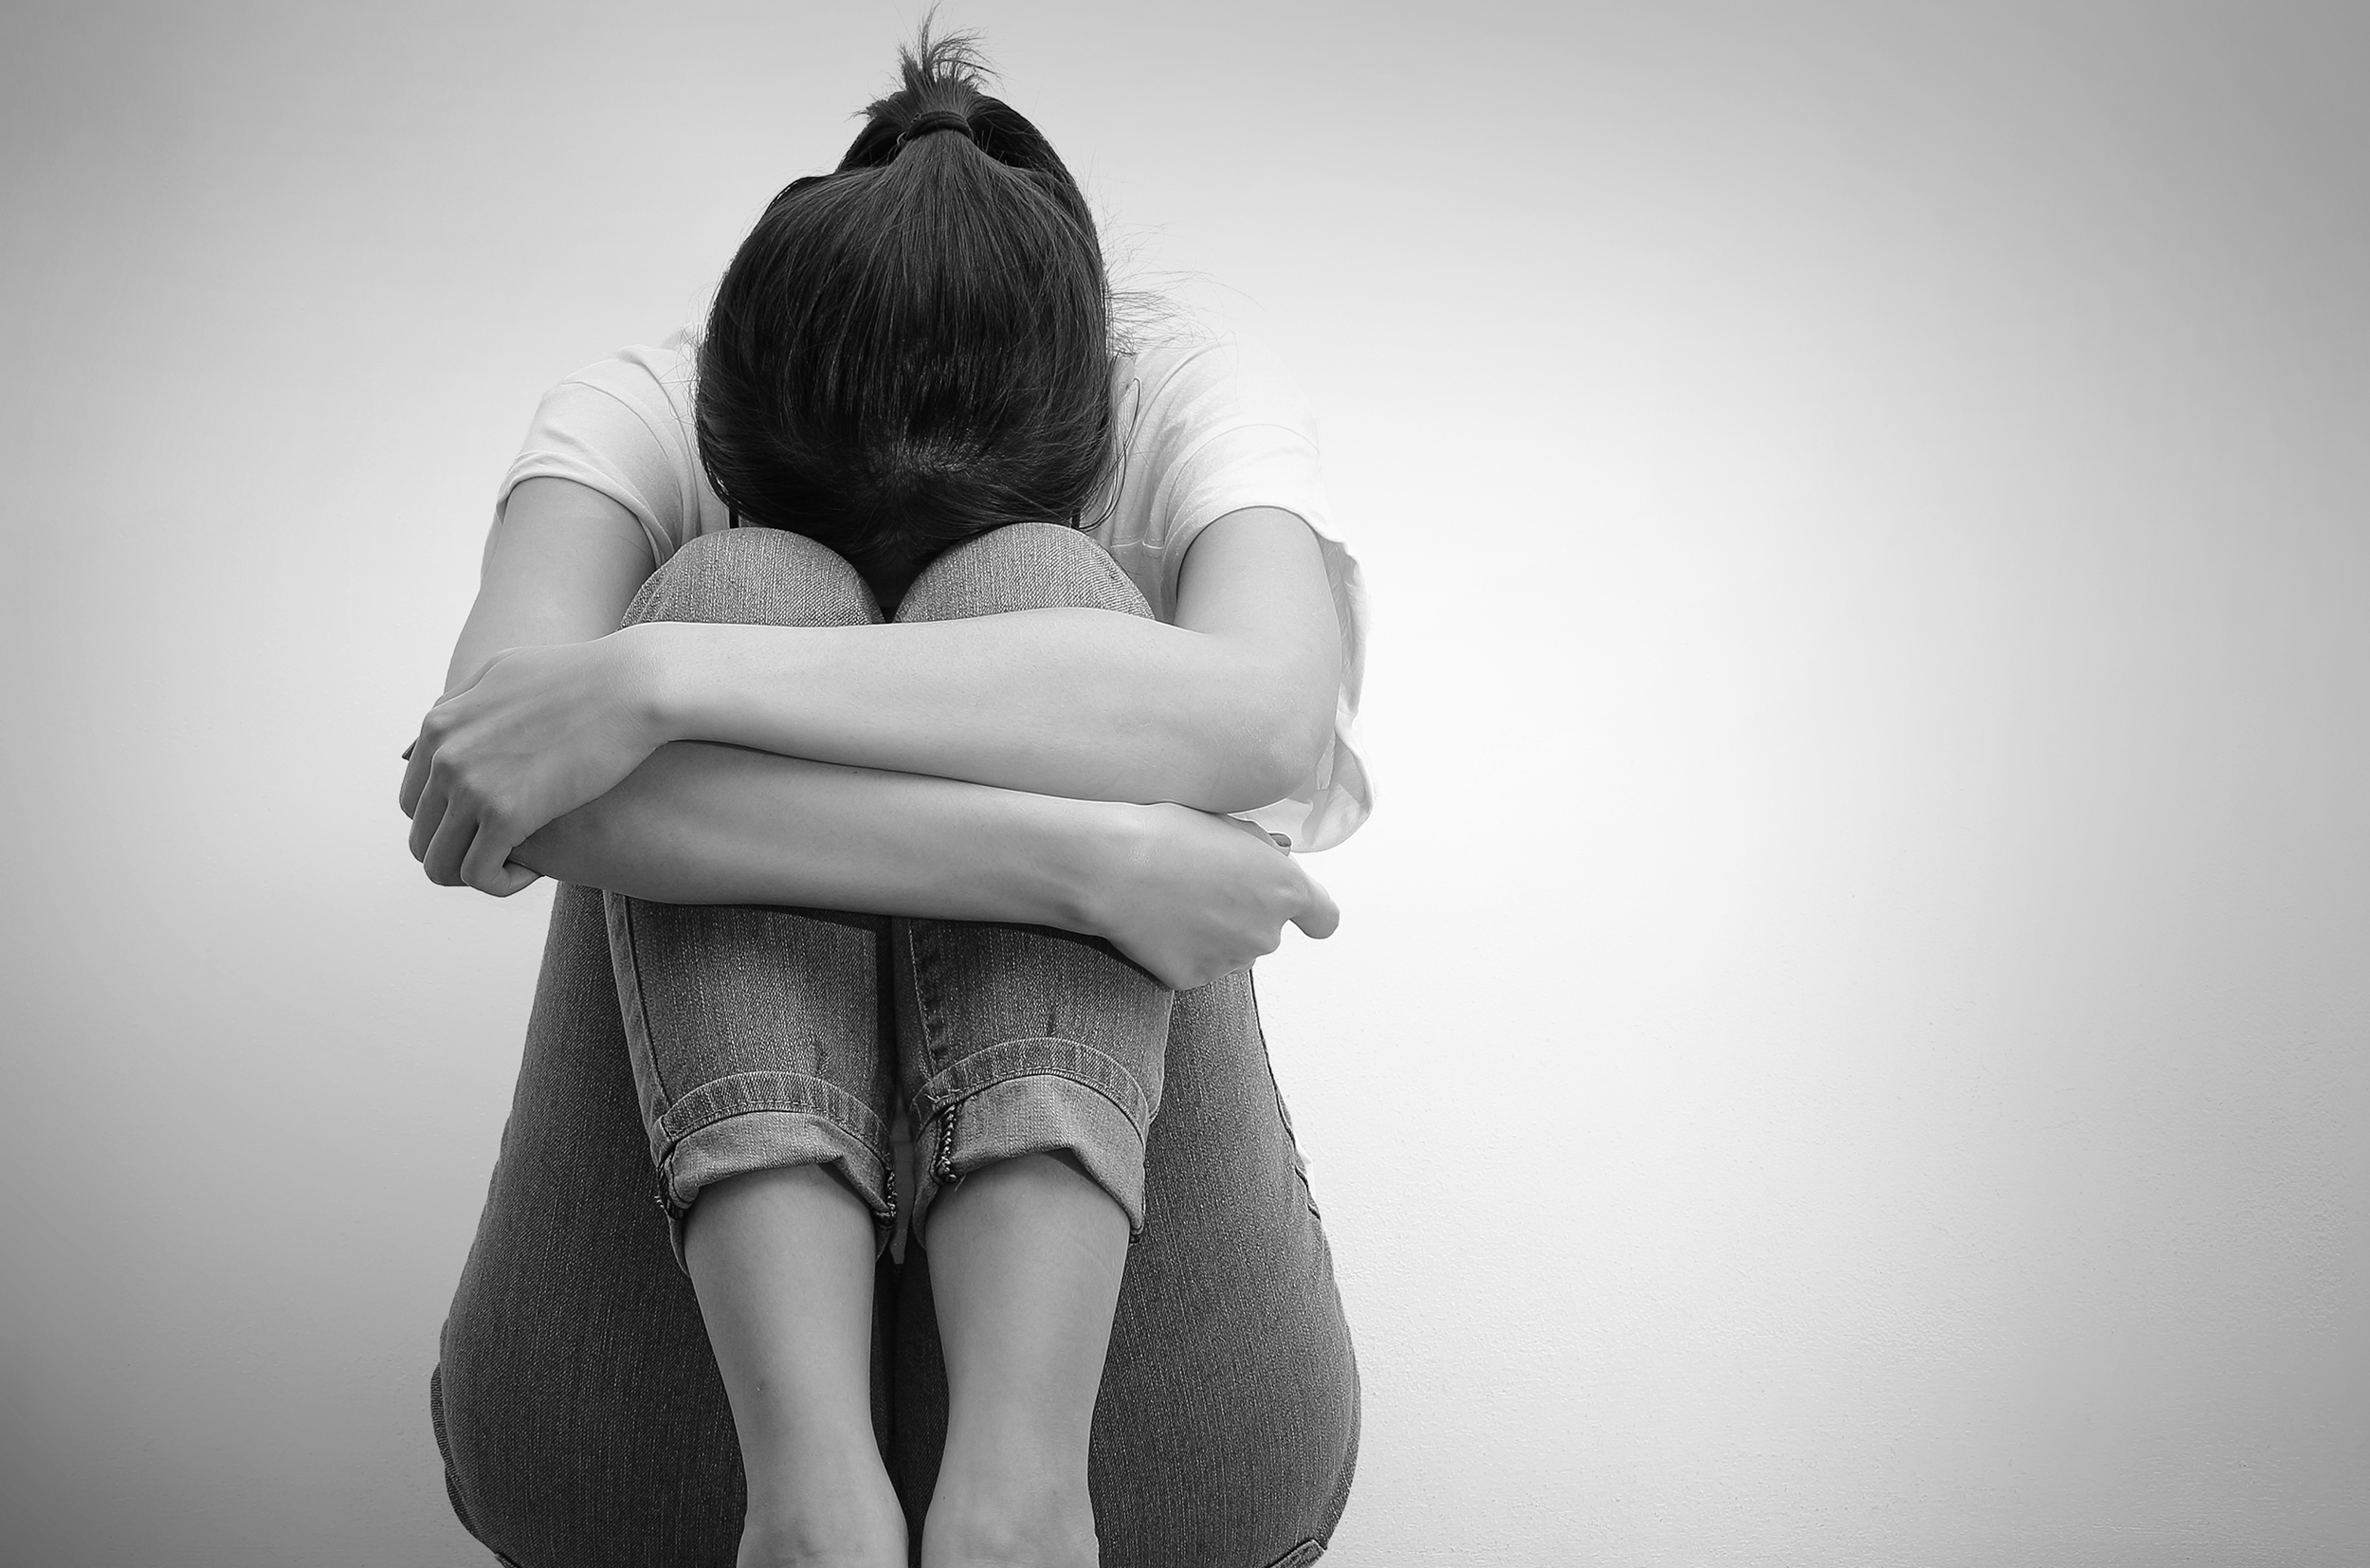 Suicide rates are rising among young girls, study finds